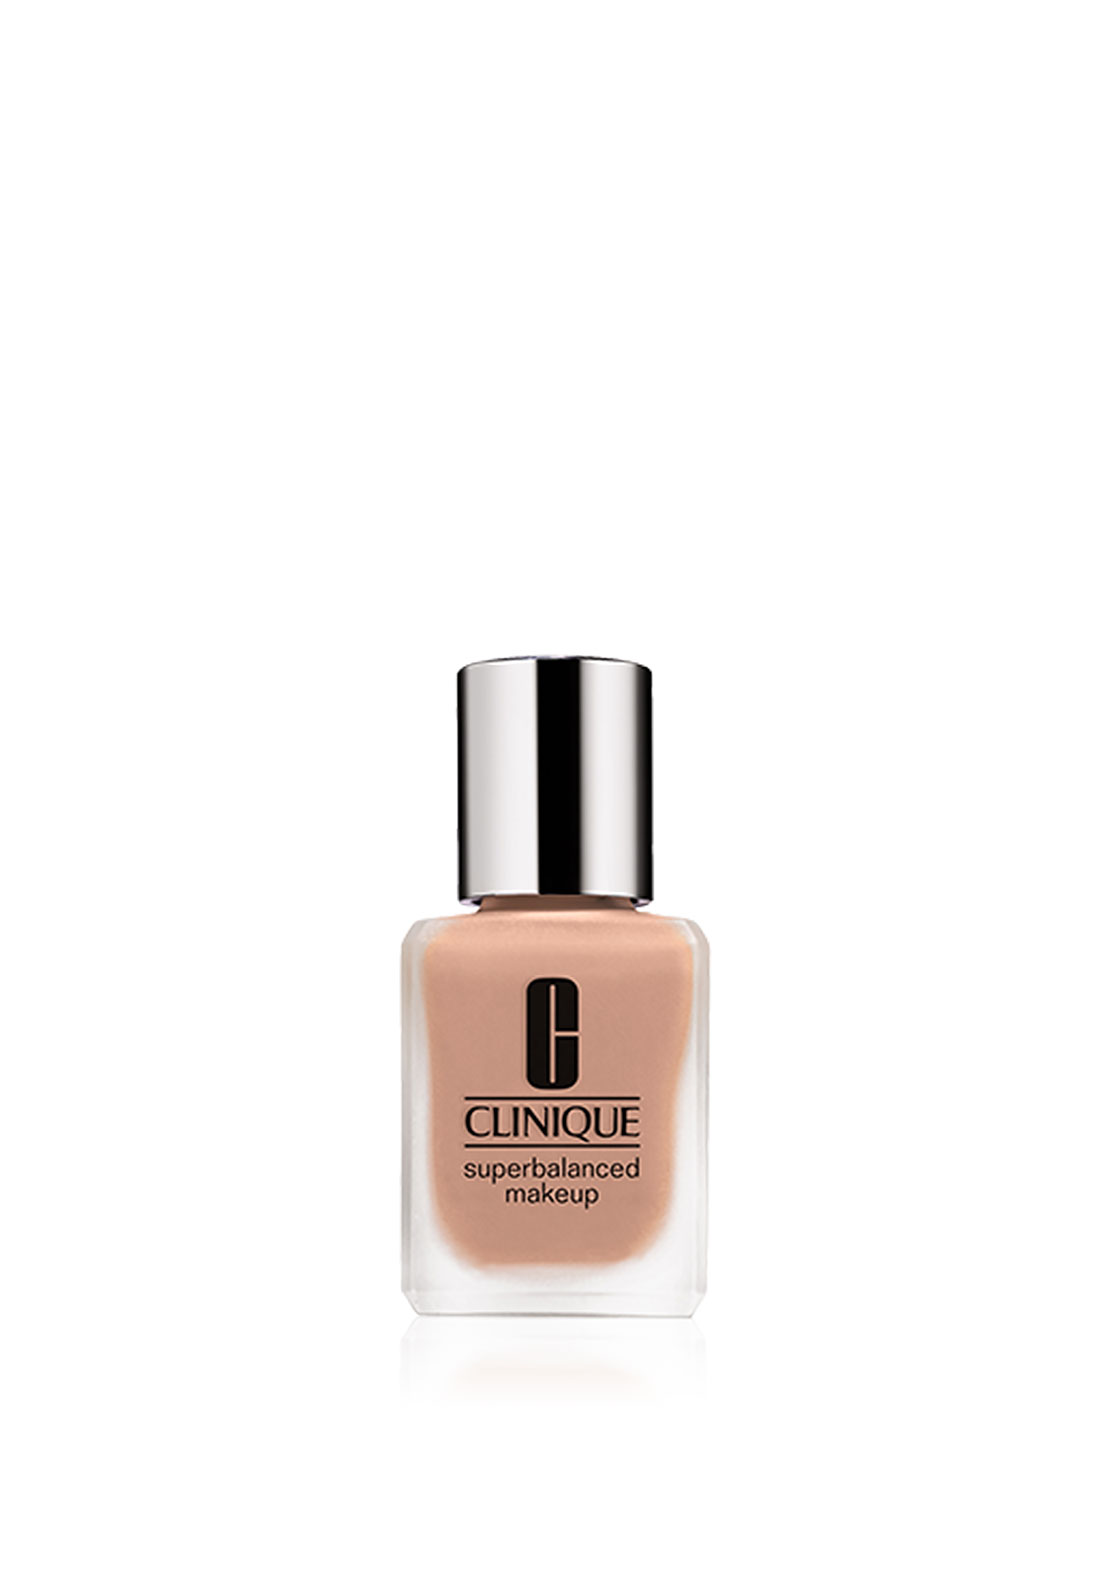 Clinique Superbalanced Make Up Foundation, Neutral